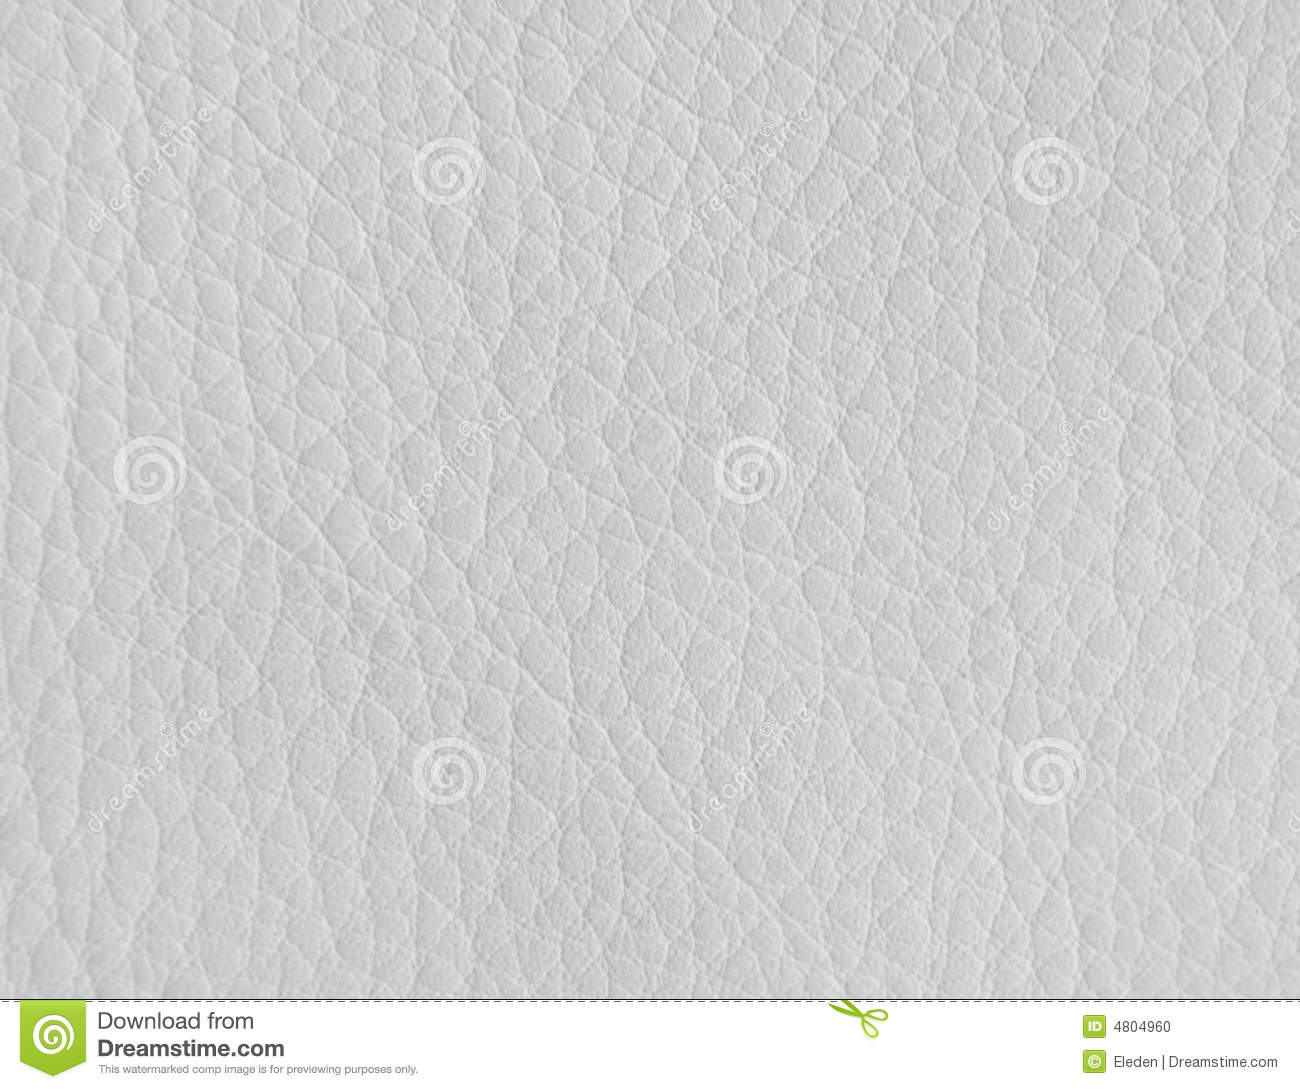 Texture of white leather